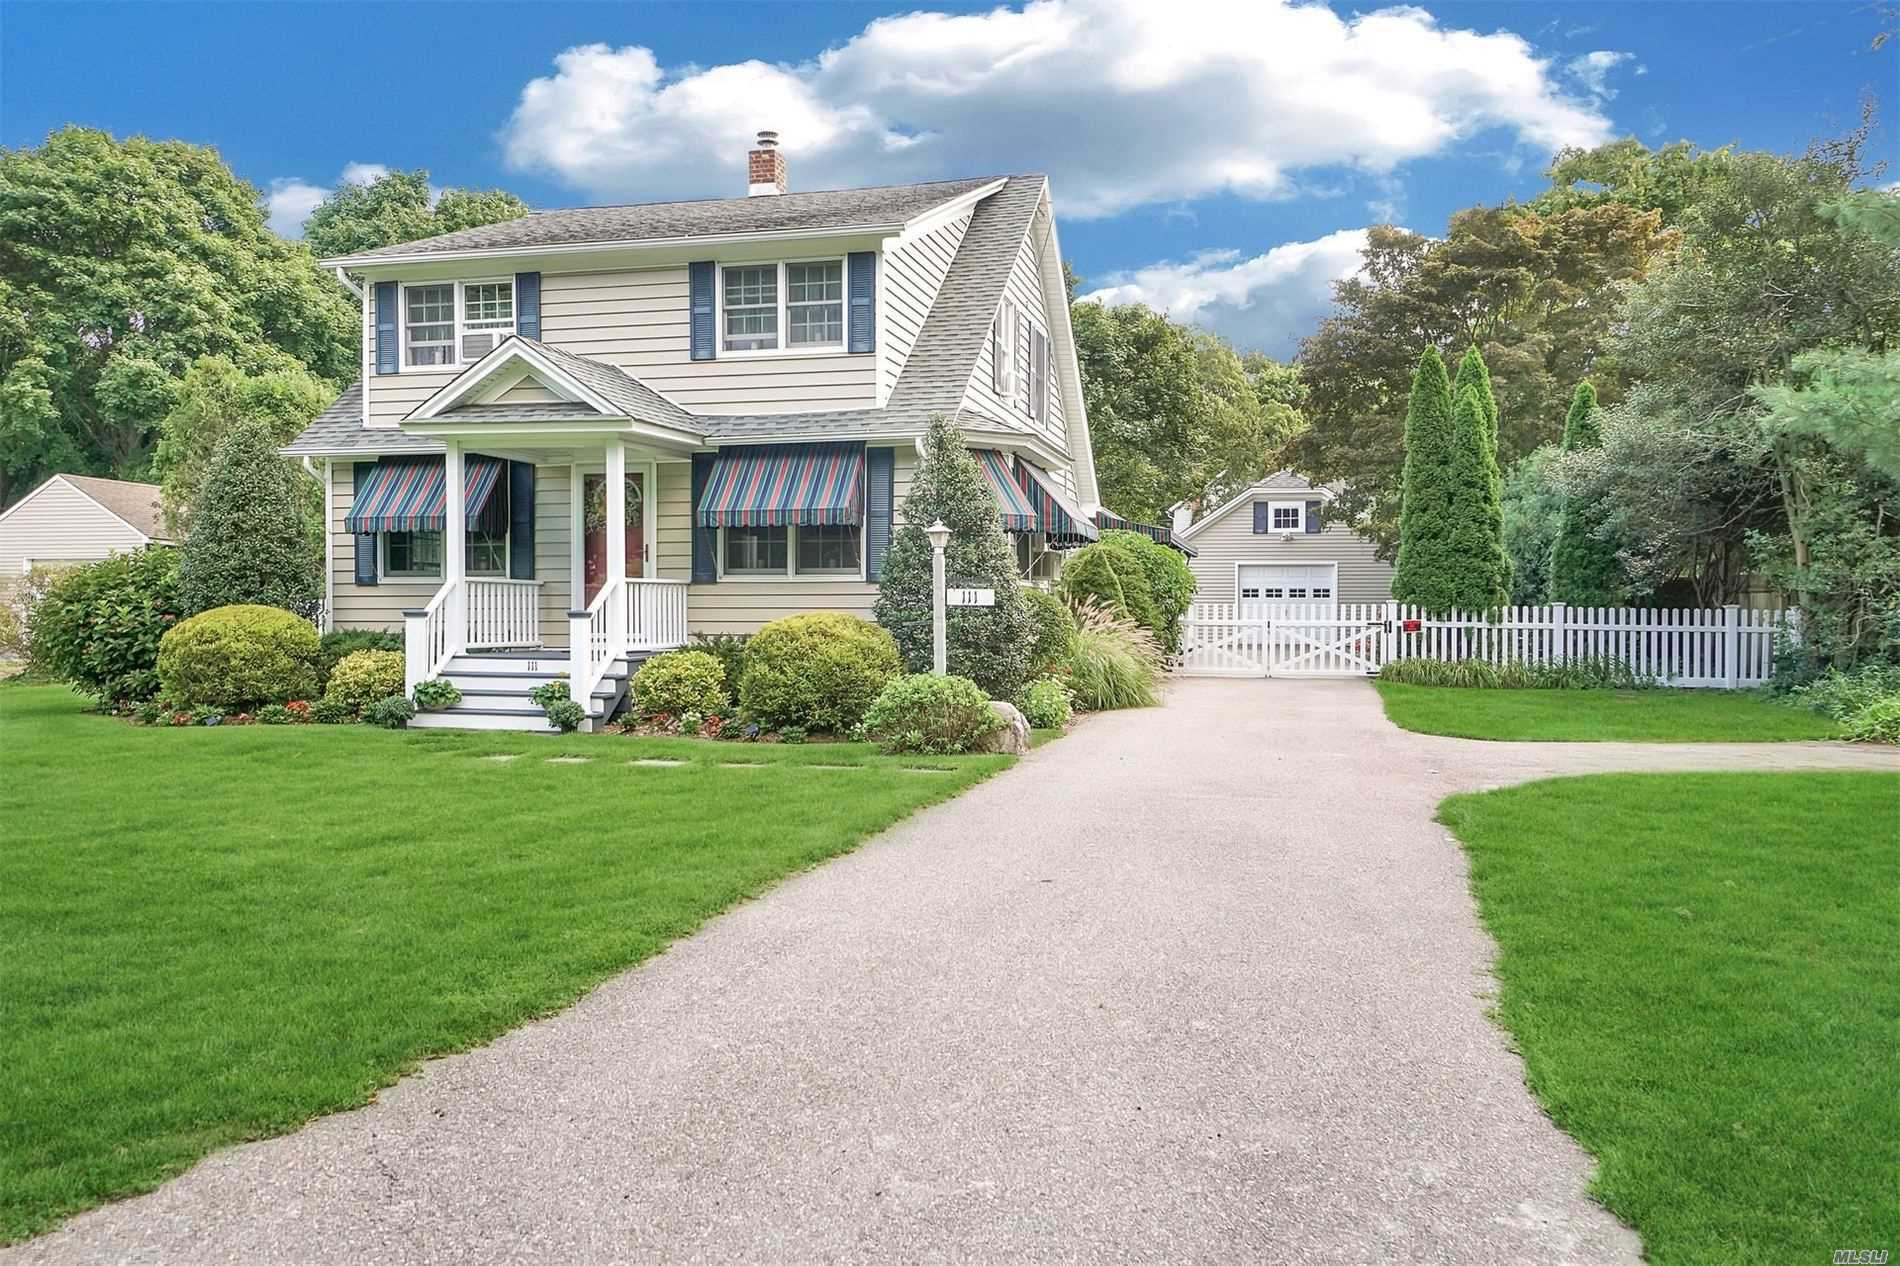 111 Orchard Rd - E. Patchogue, New York